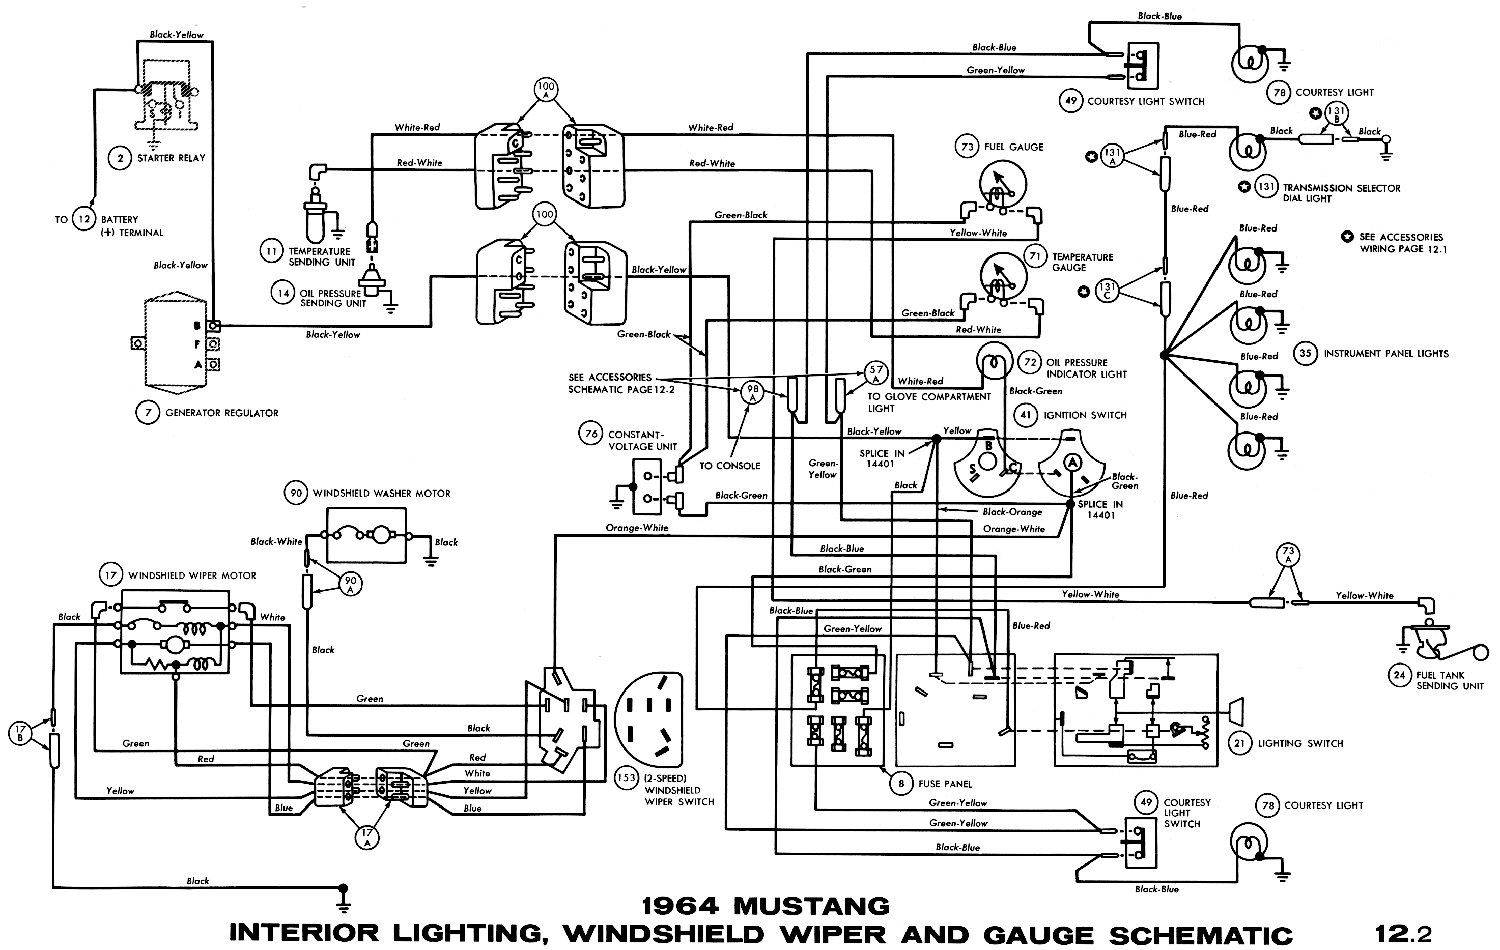 [DIAGRAM_5LK]  9106D8 04 Gto Radio Wiring Diagram | Wiring Library | 1966 Ford Radio Wiring Diagram |  | Wiring Library